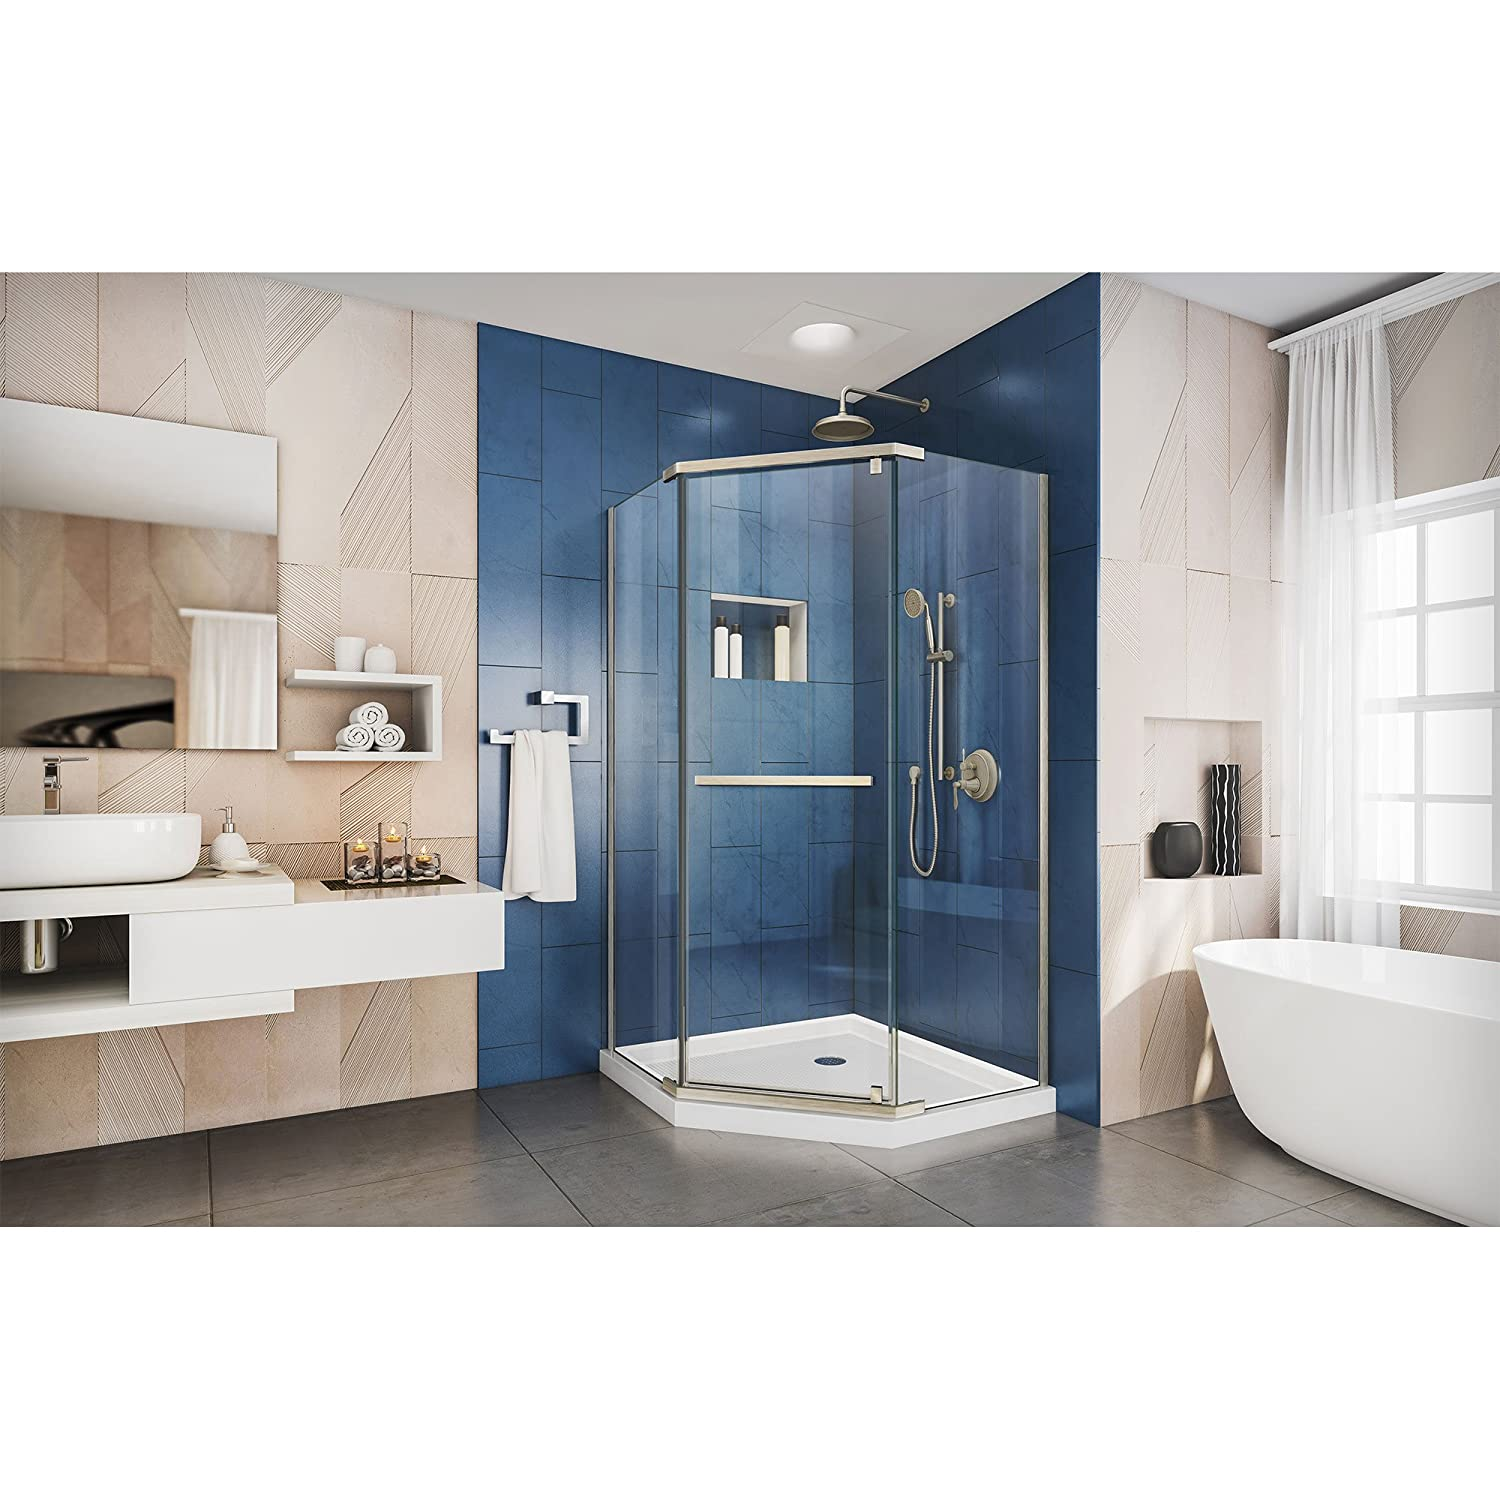 DreamLine Prism 36 1/8 in. D x 36 1/8 in. W, Frameless Pivot Shower ...